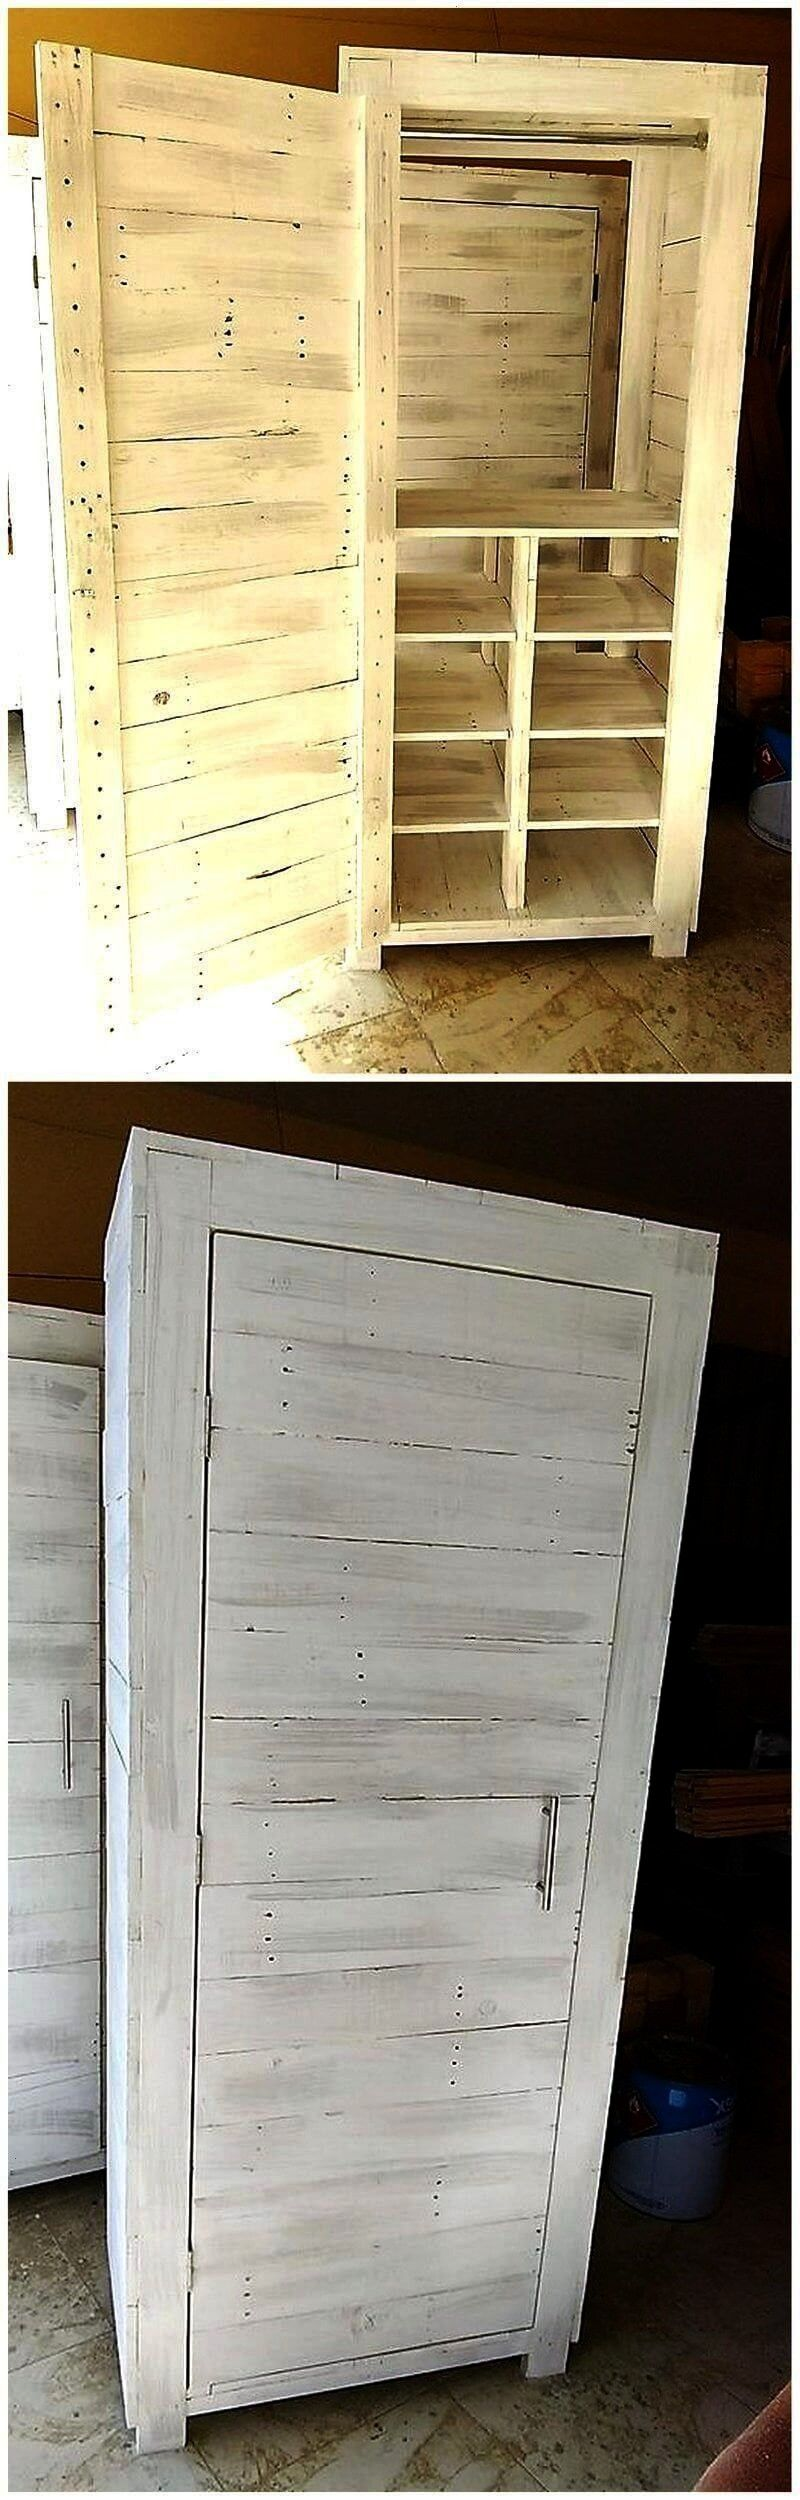 to Rebuild And Reuse Wood Pallets  It happens most of the time that a house maker gets worried about the highcosts of wooden furniture So they move toward the innovative...